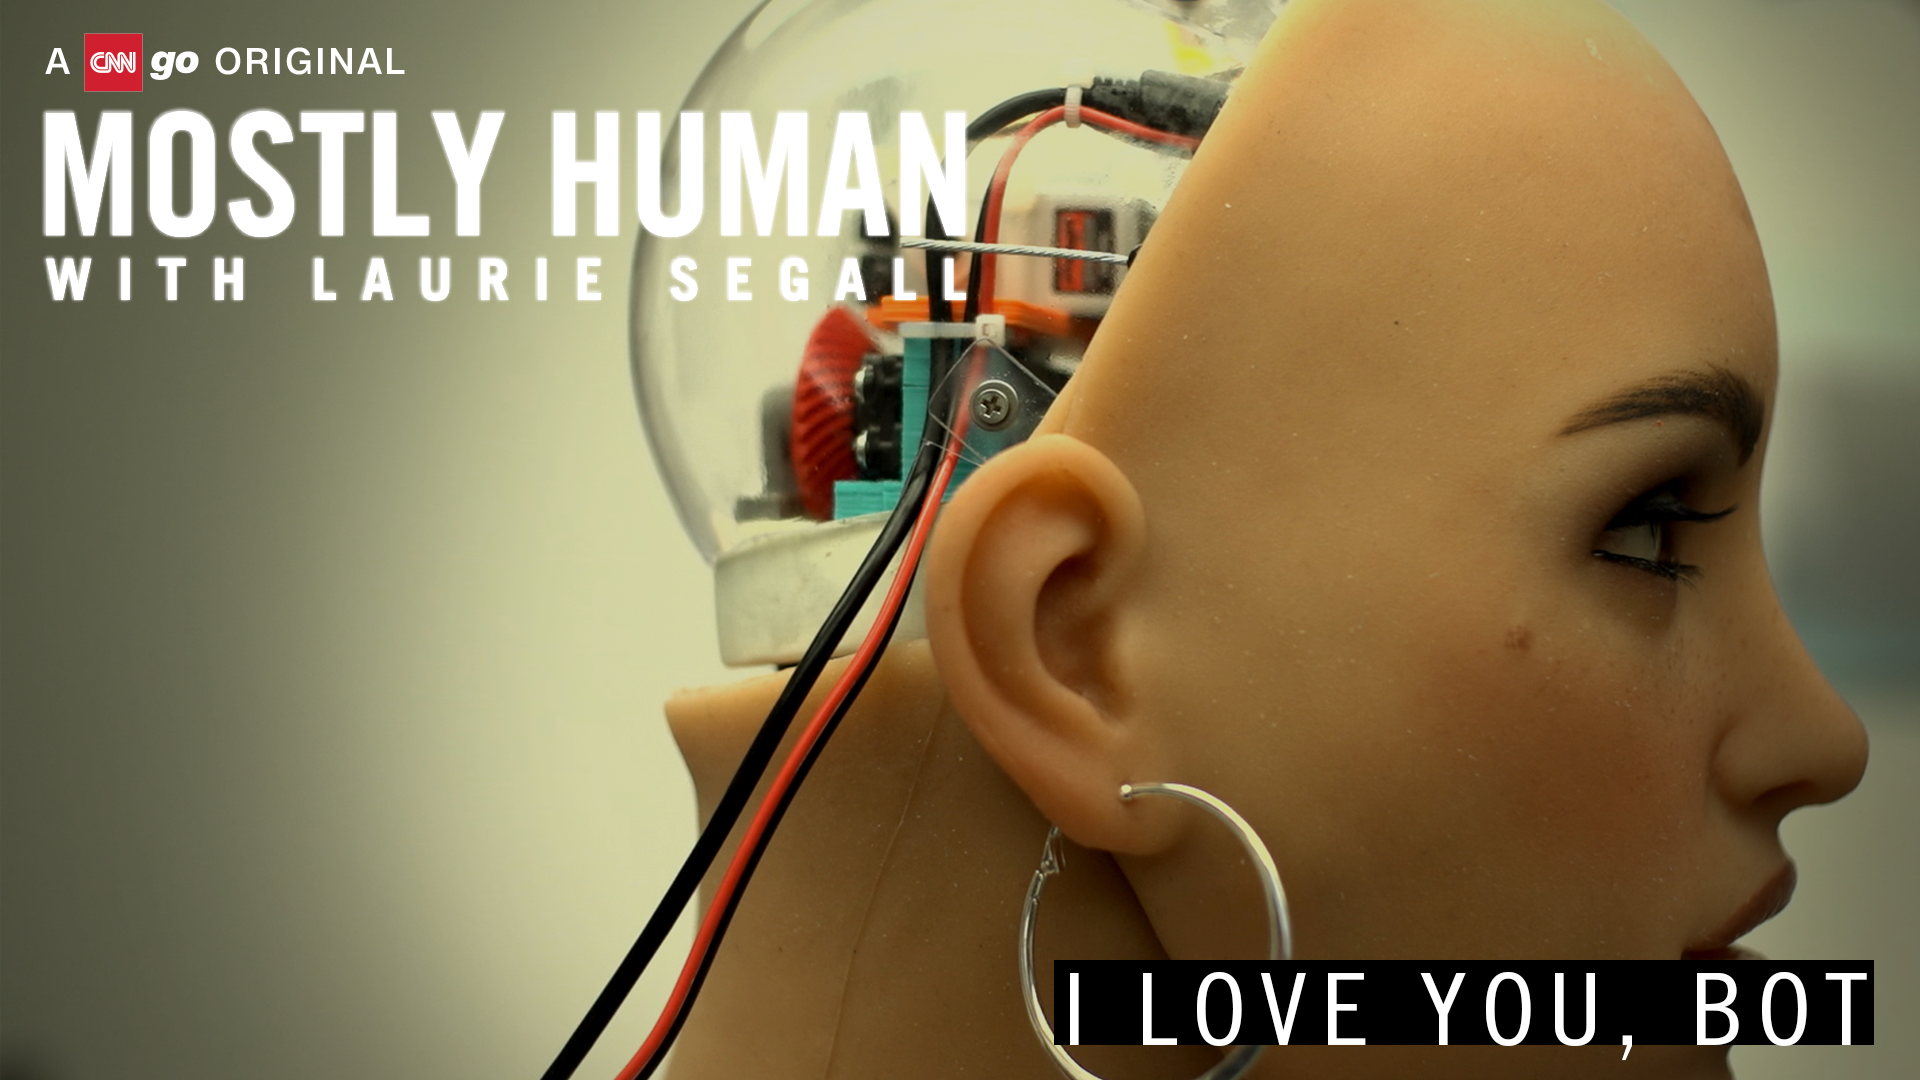 Mostly Human I Love You Bot CNNMoney